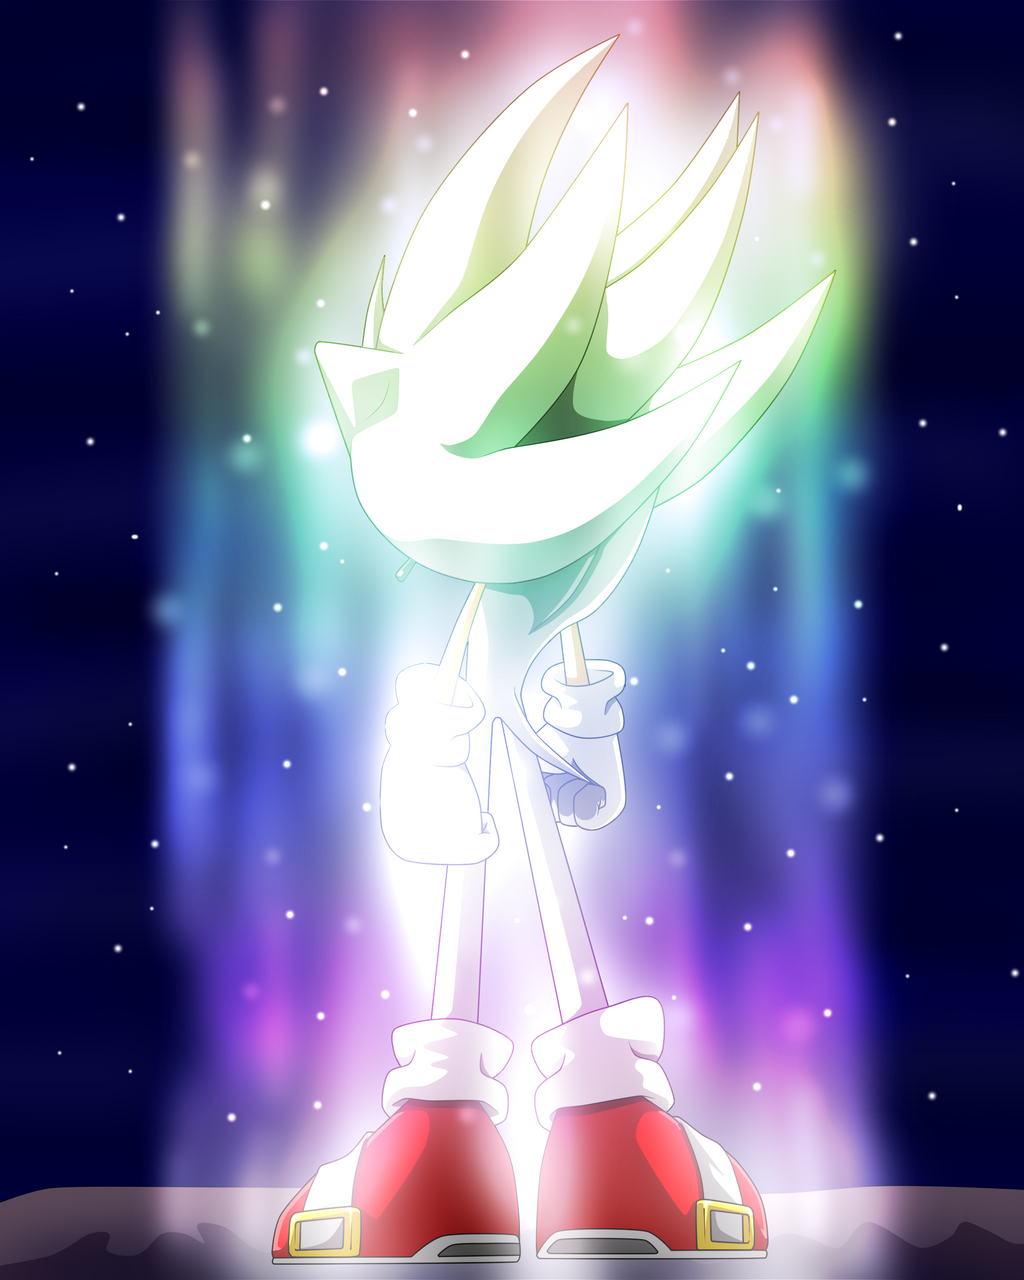 Hyper Sonic Volvere by japoloypaletin on DeviantArt